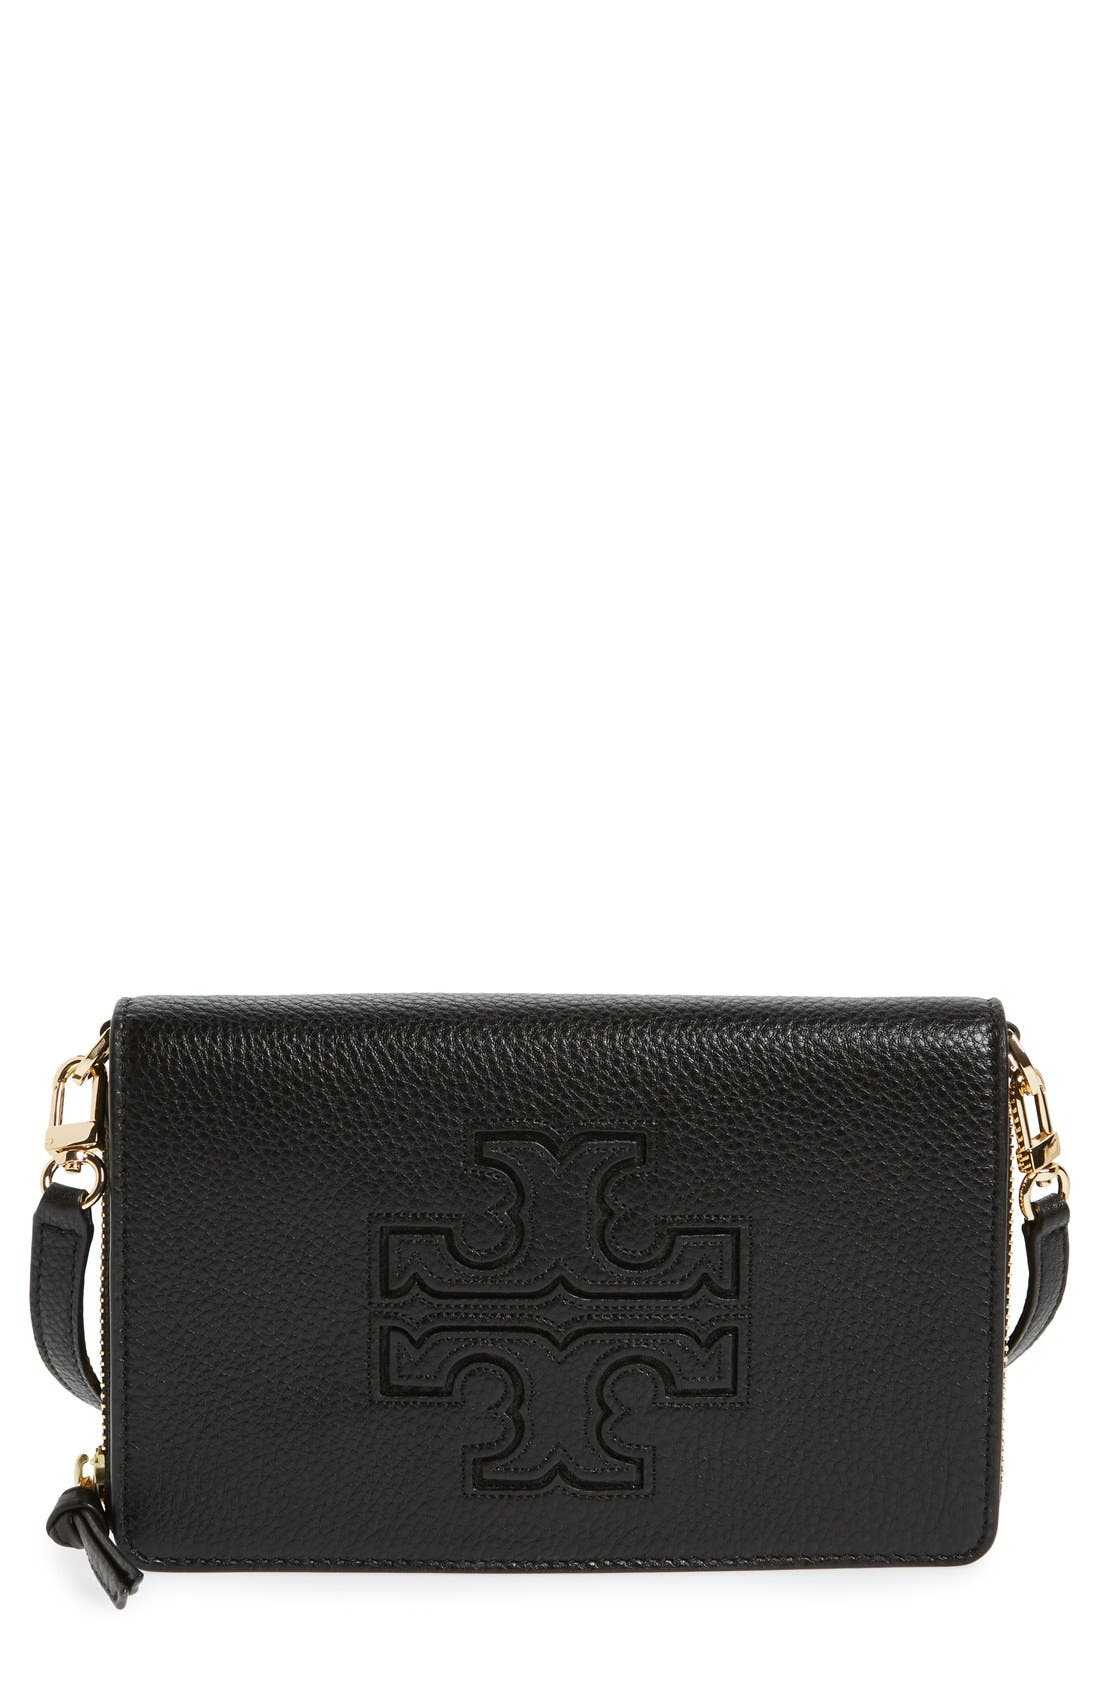 'Harper' Pebbled Leather Wallet Crossbody Bag,                             Main thumbnail 1, color,                             012